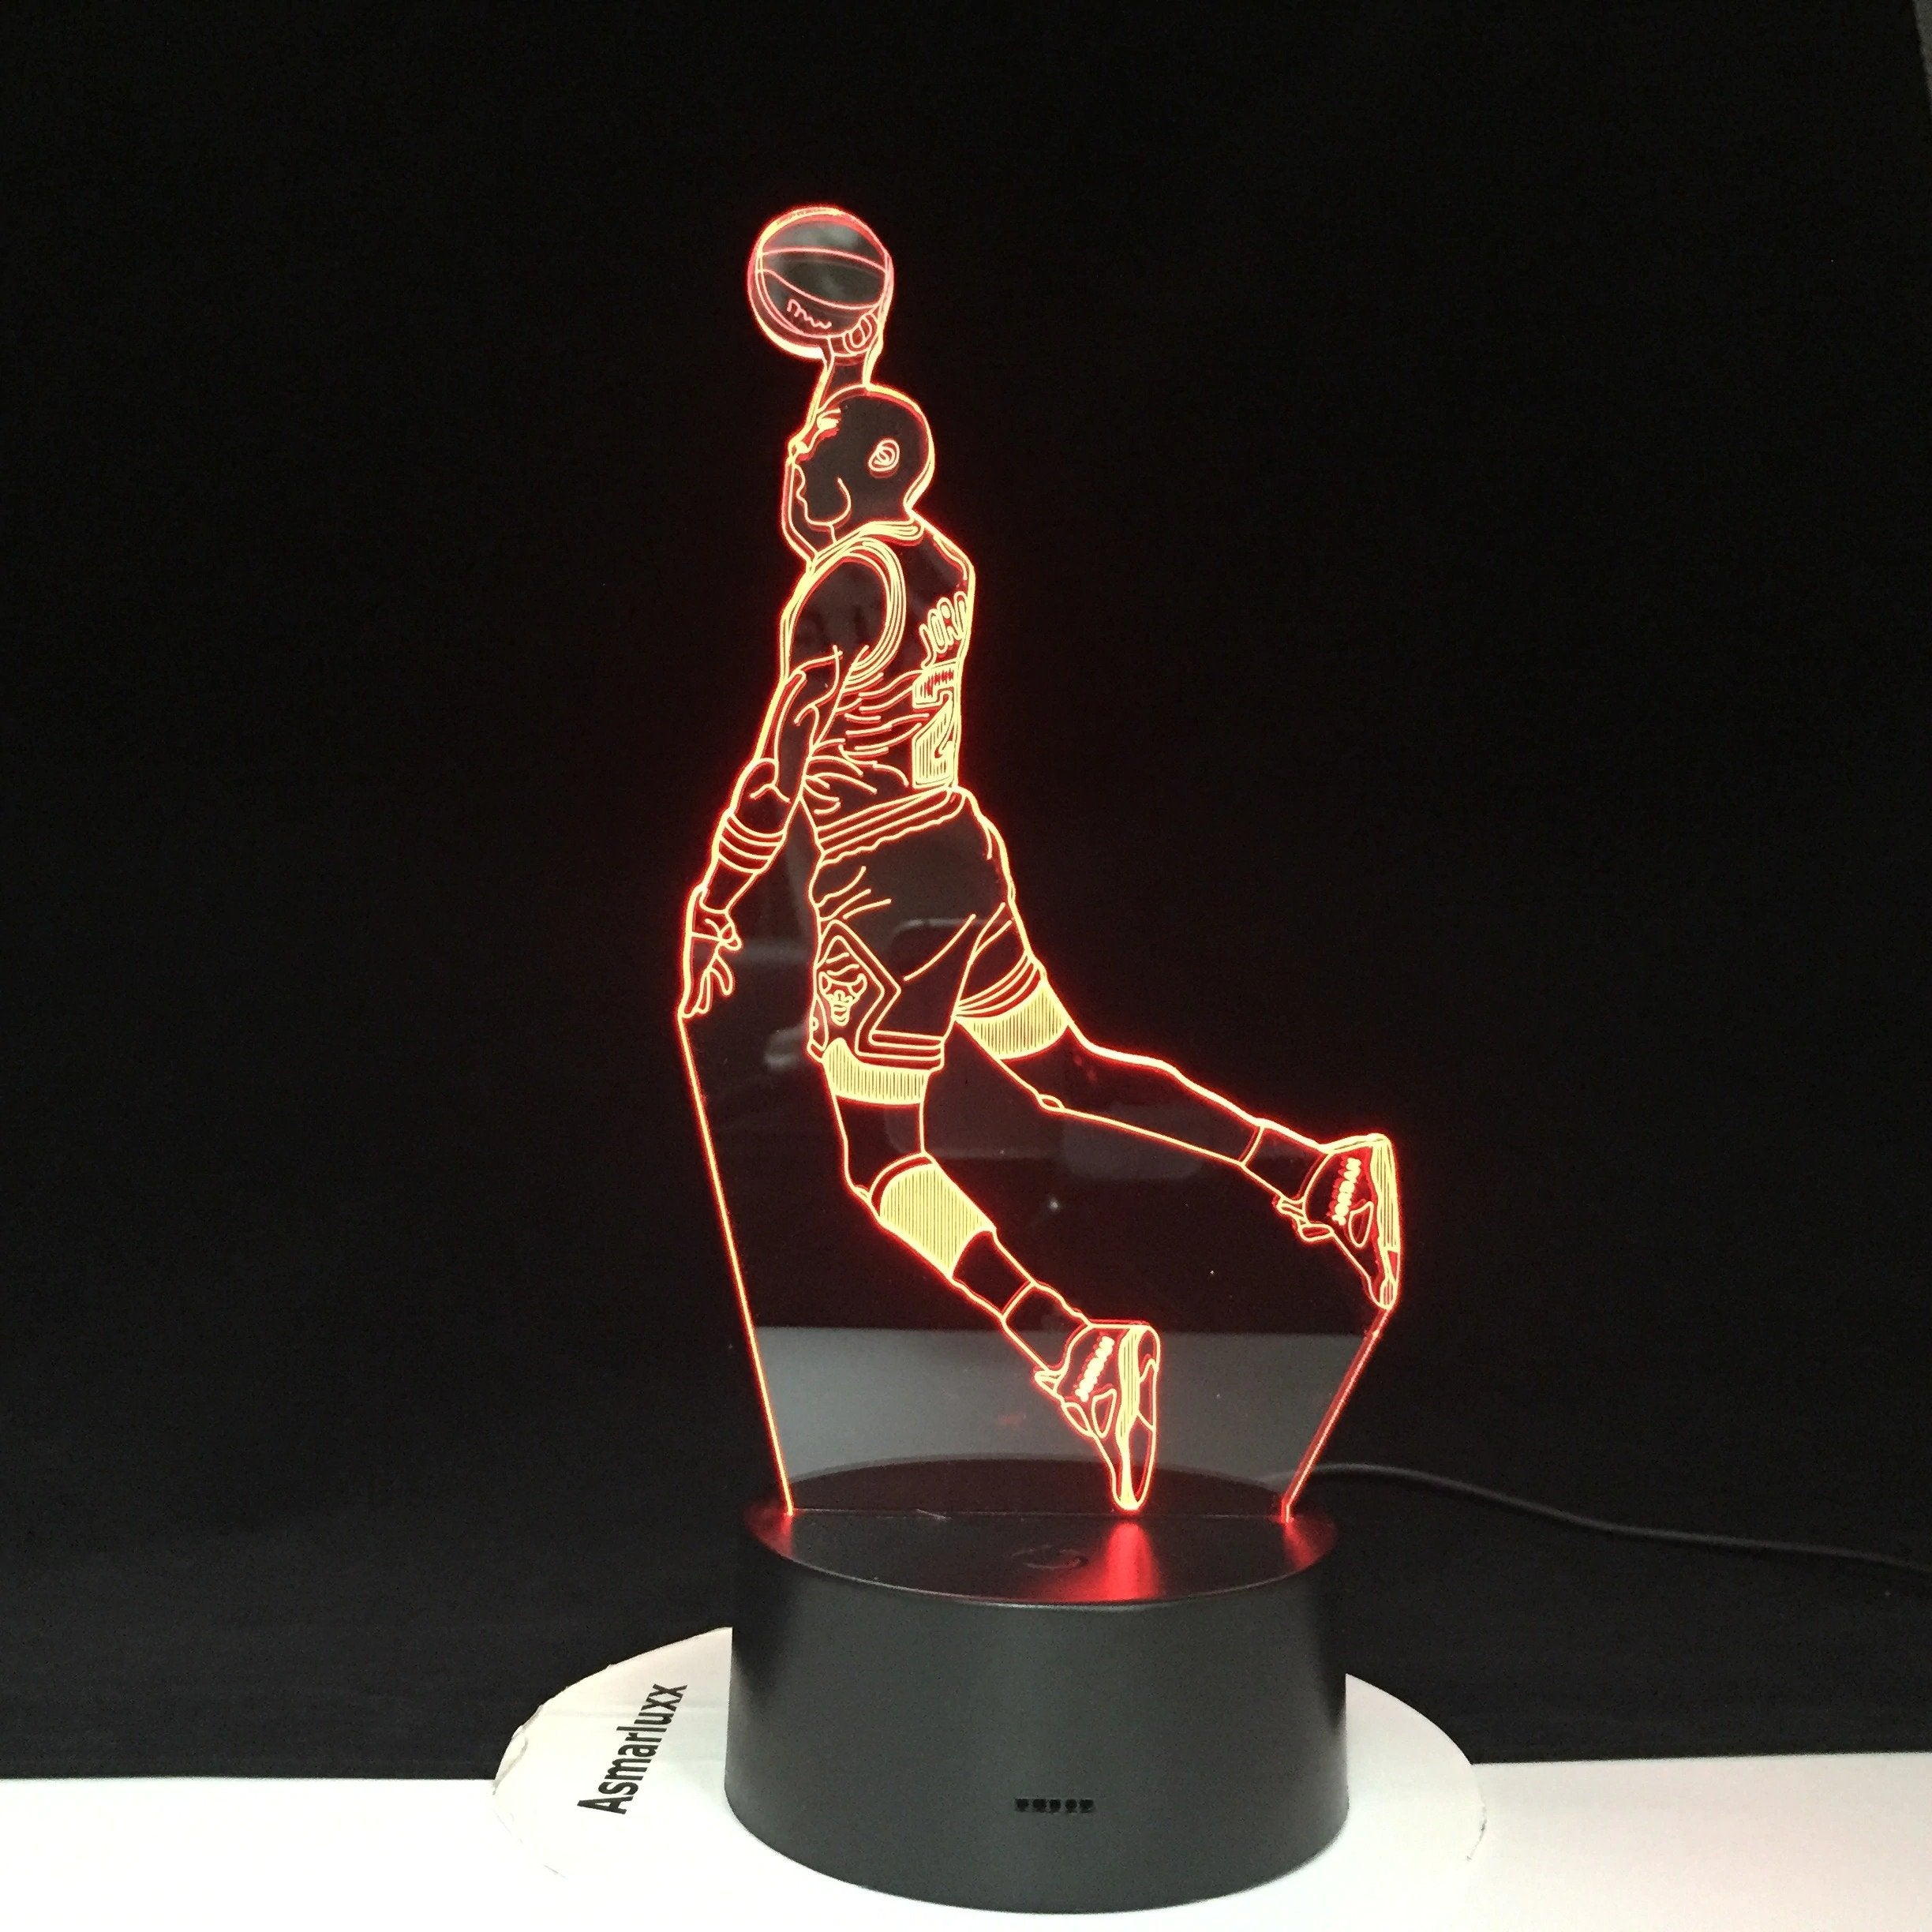 The G.O.A.T Michael Jordan Lamp